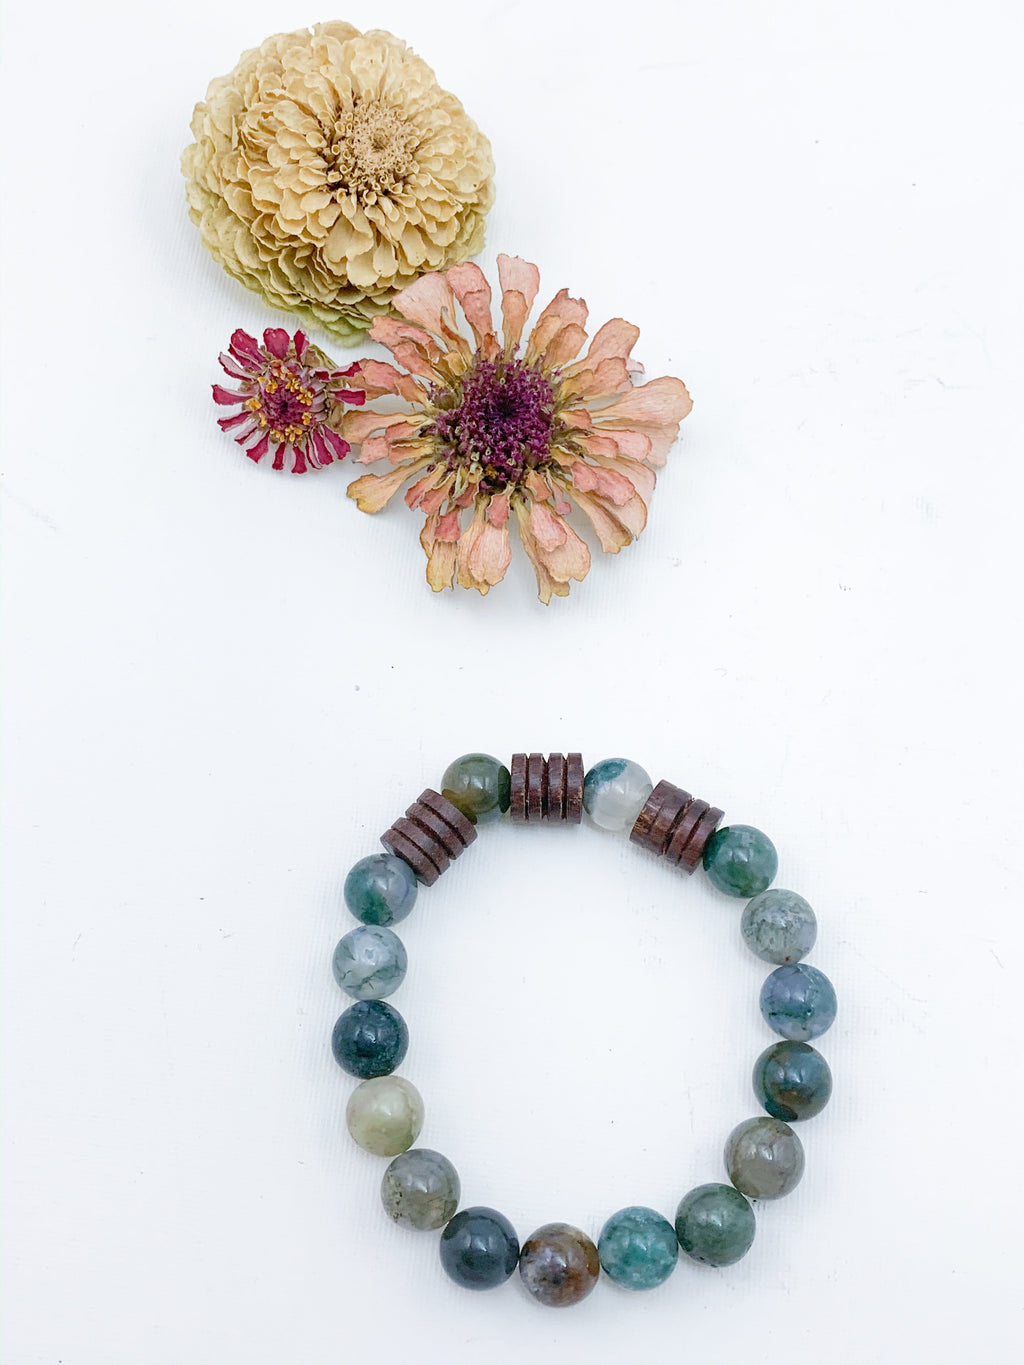 Fancy Jasper Beaded Bracelet with Wooden Accents - Allie & Tess